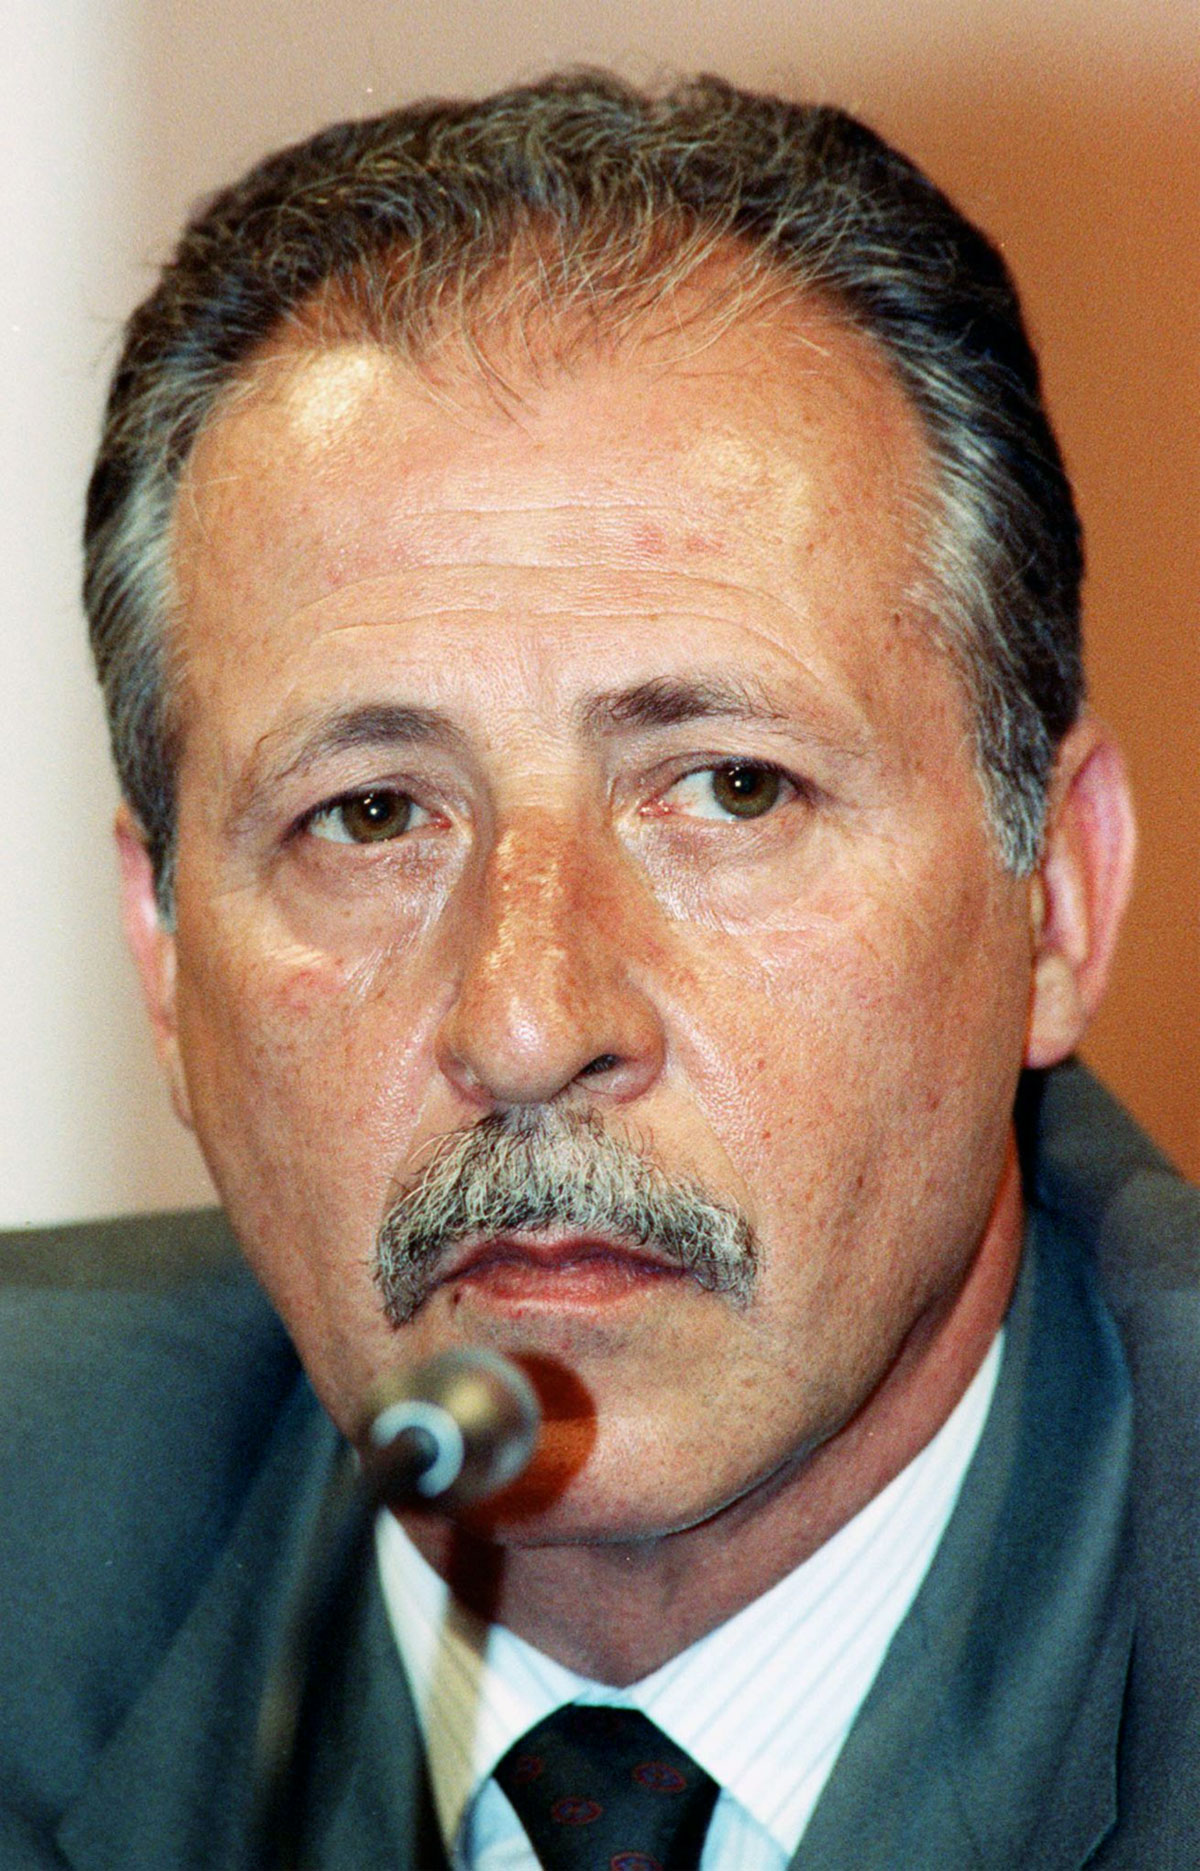 paolo borsellino - photo #4